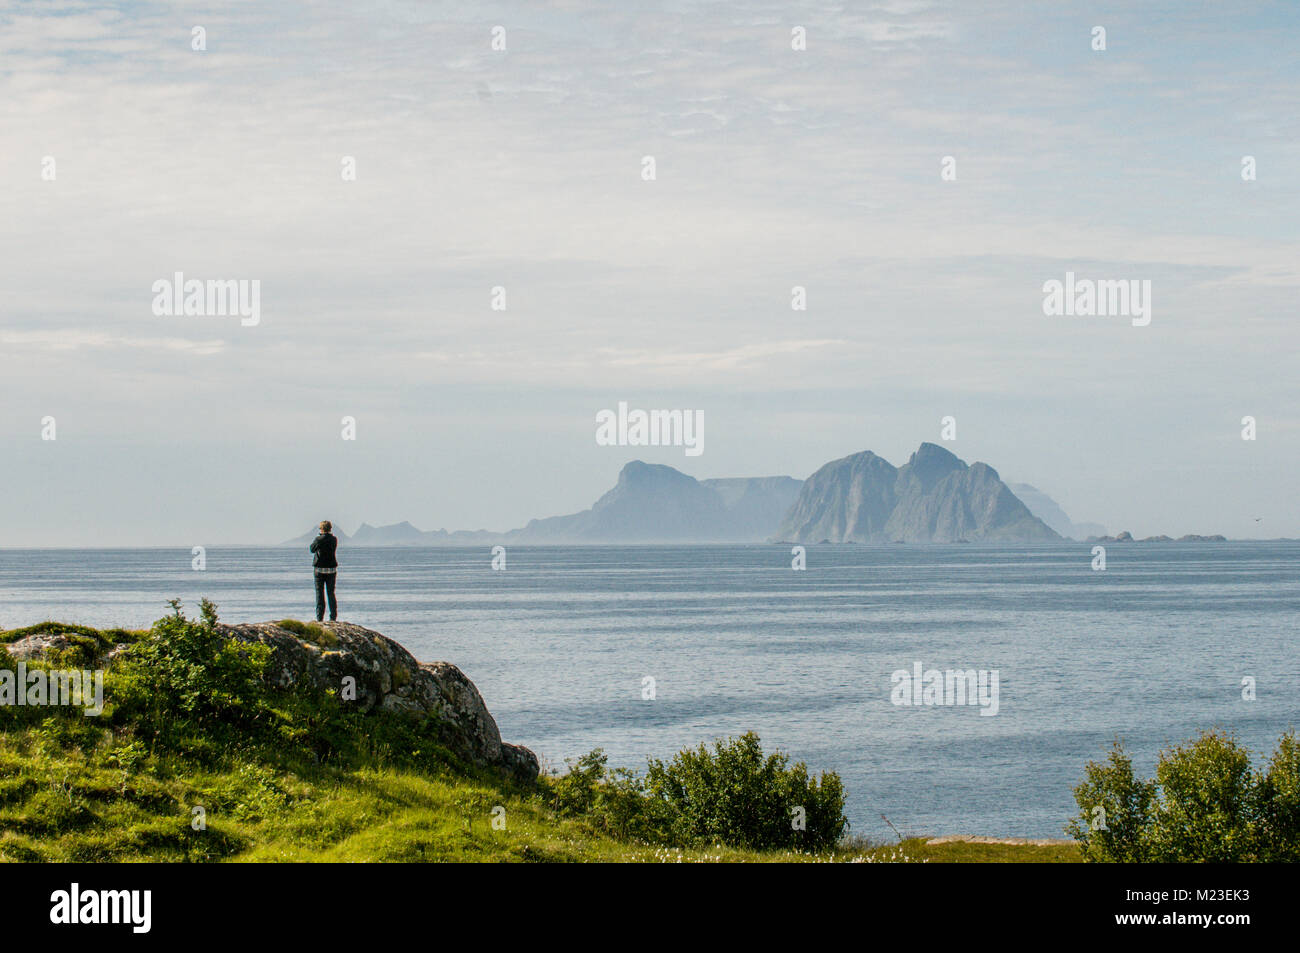 End of the road in Lofoten. Route E10 ends at Å, Moskenes in the southernmost part of the Lofoten archipelago. - Stock Image